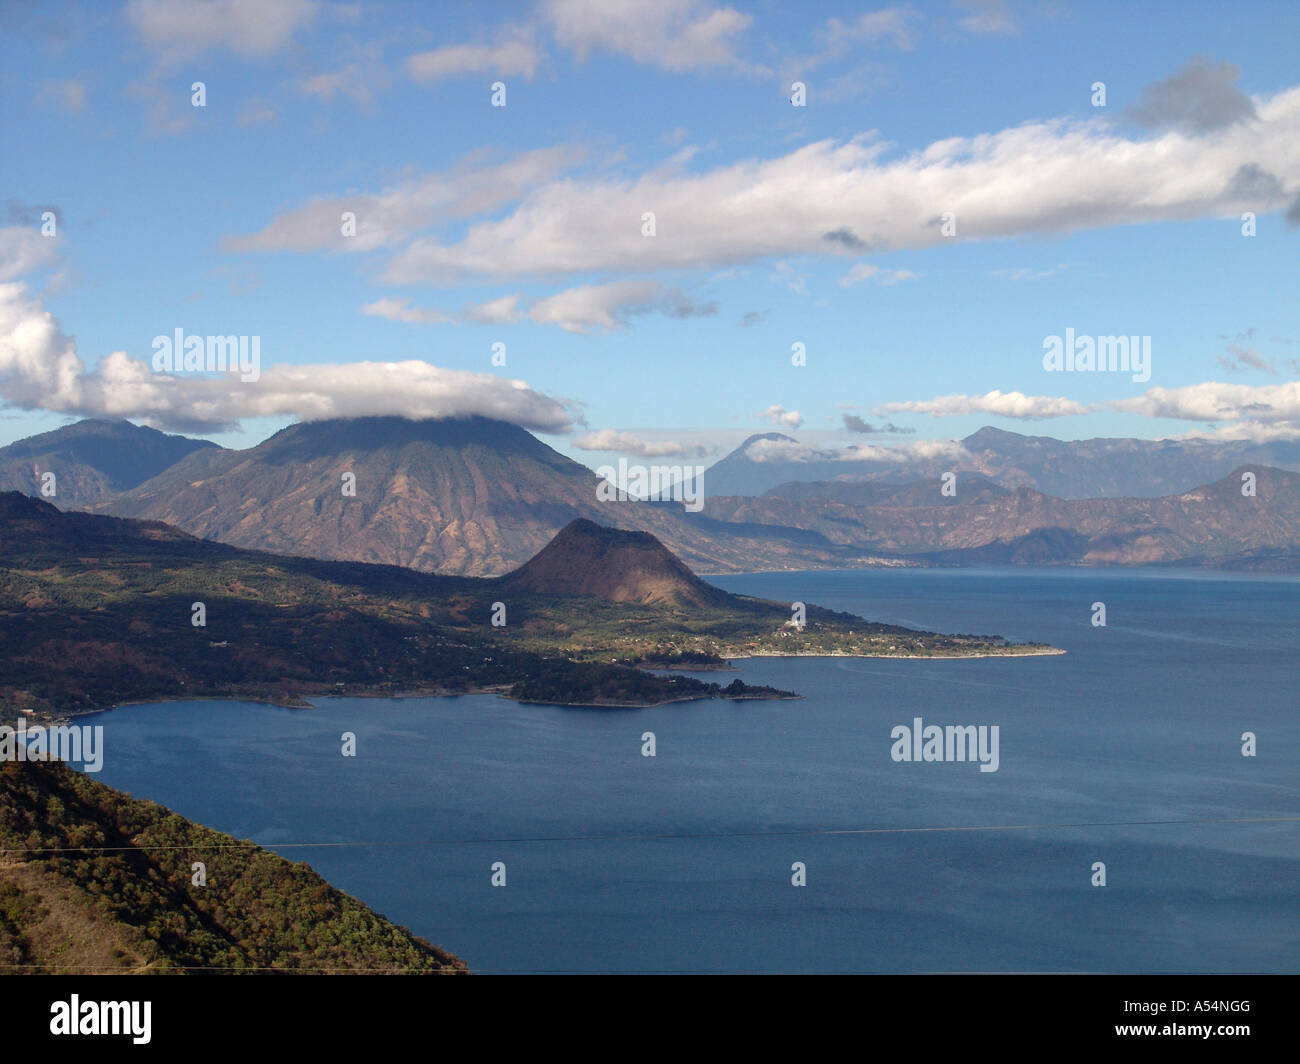 Painet ip1708 guatemala view over lake atitlan country developing nation less economically developed culture emerging - Stock Image